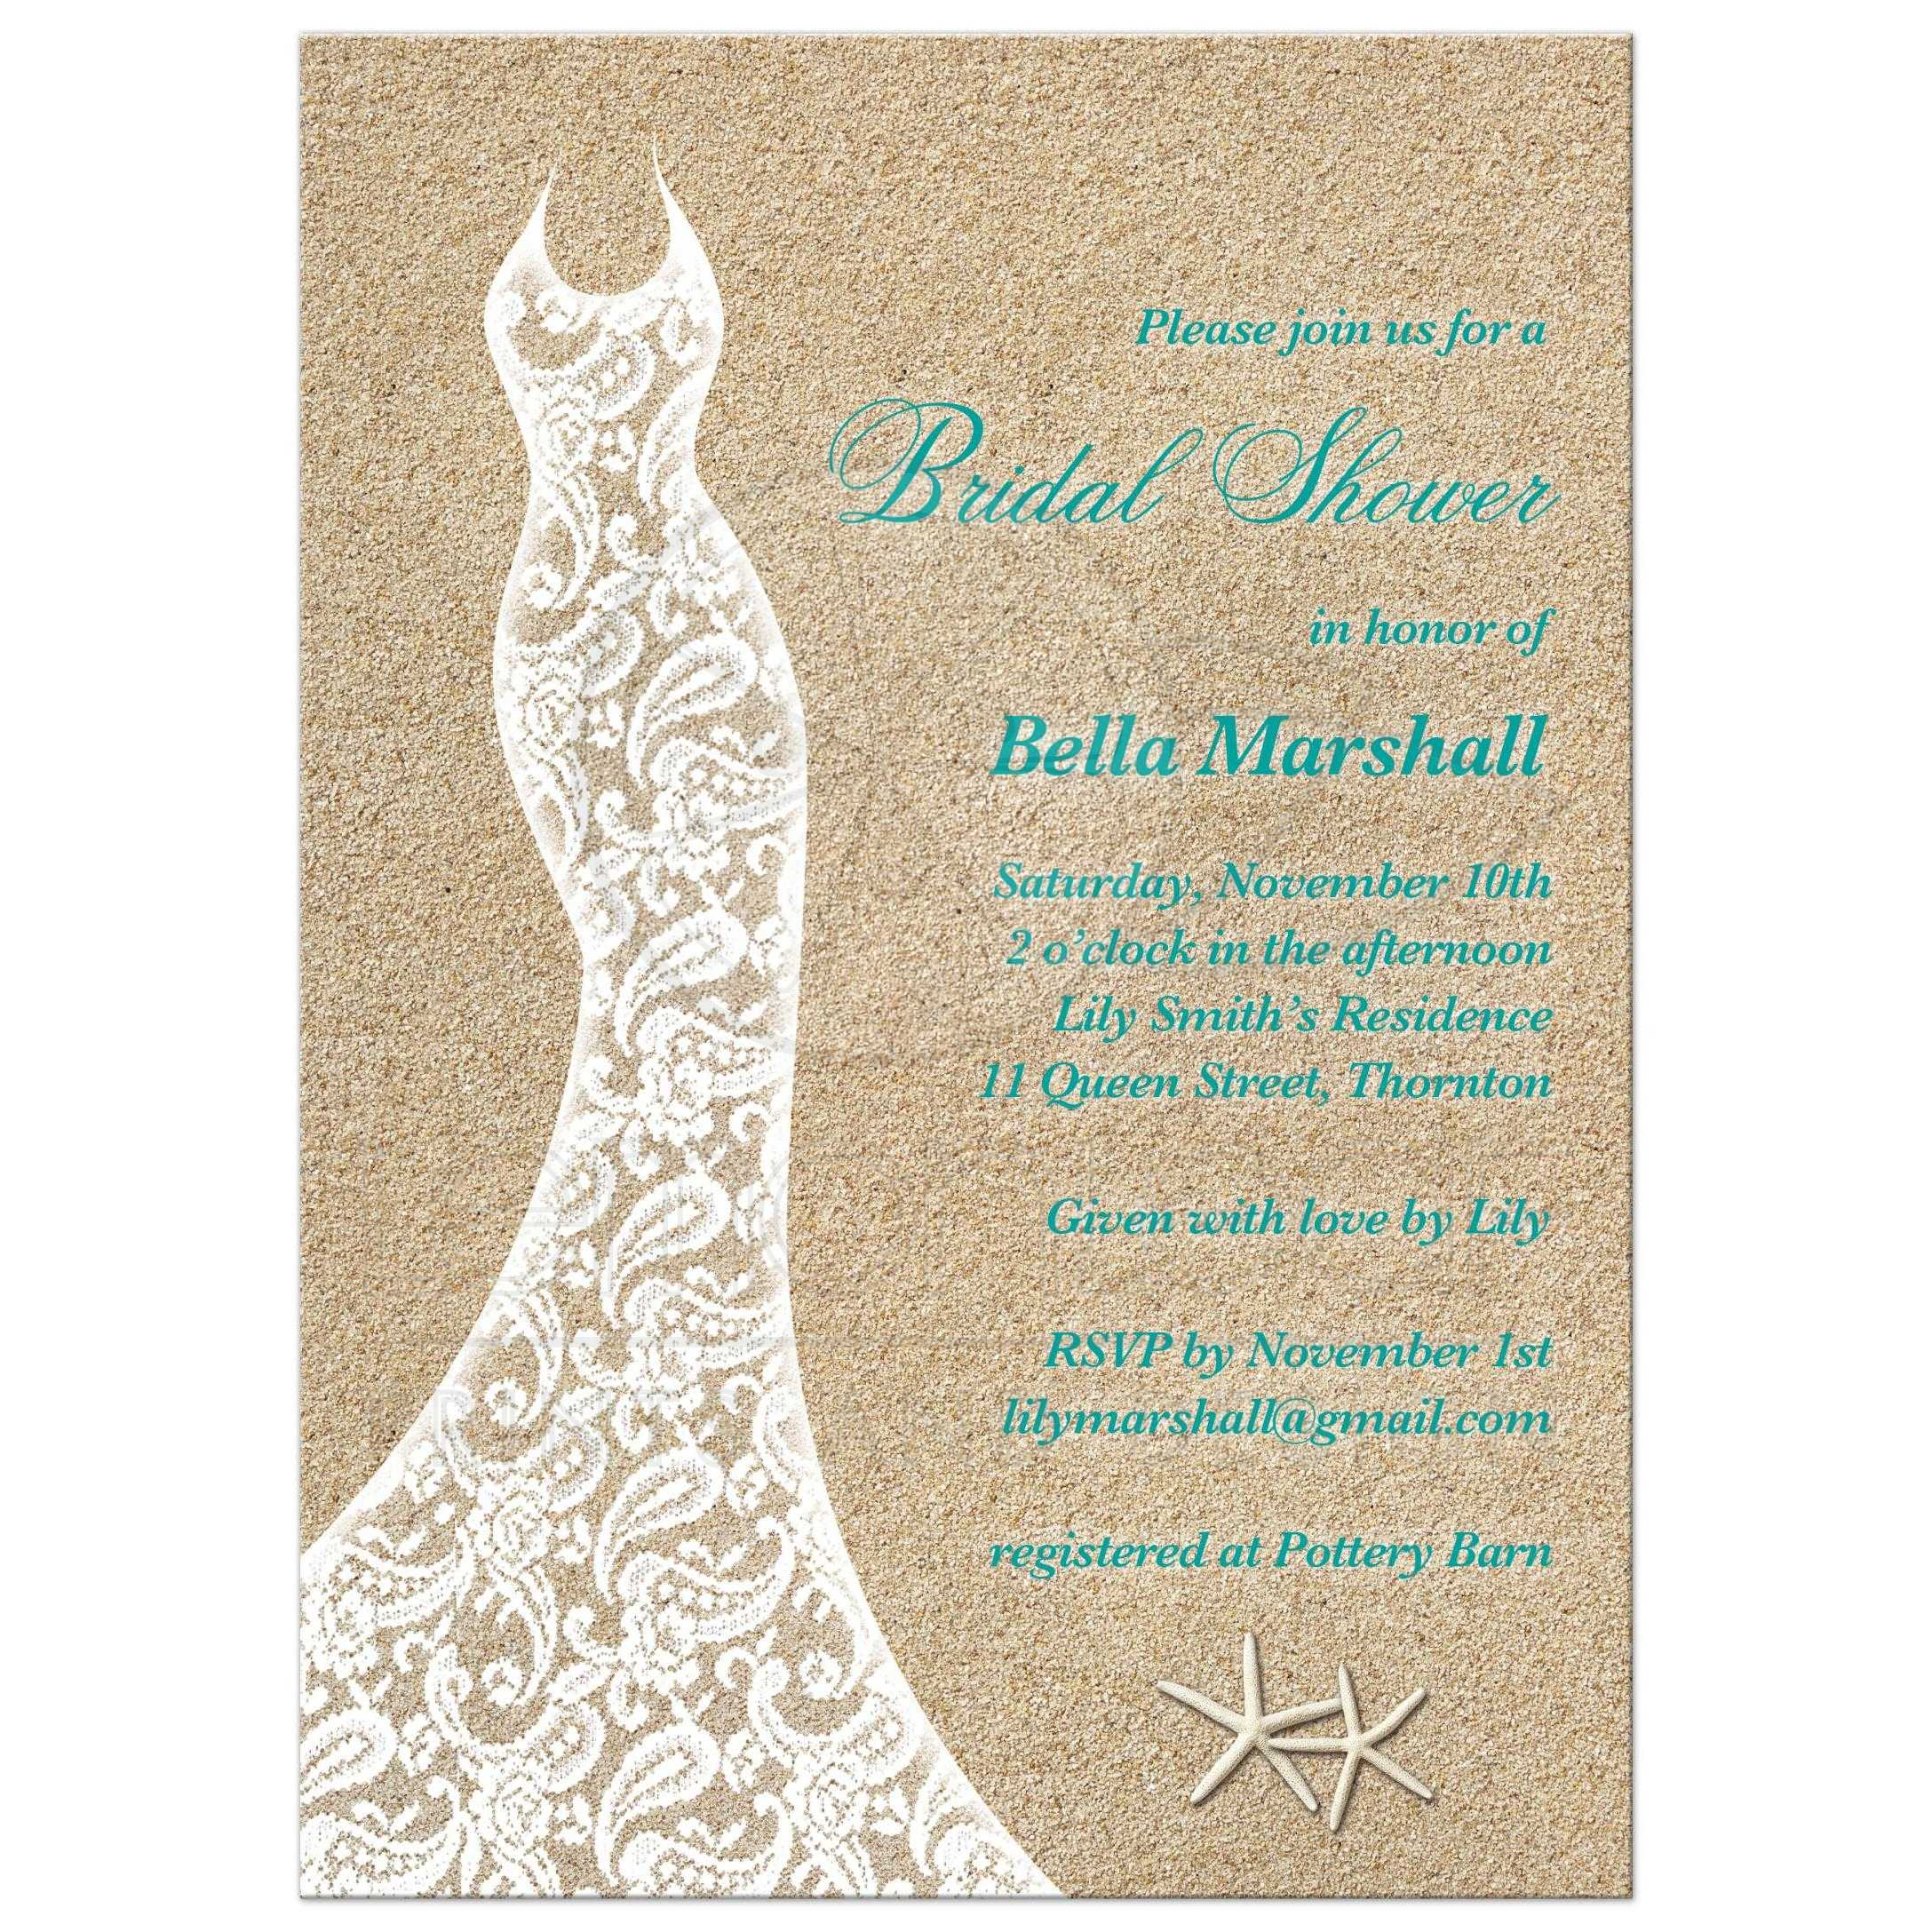 Bridal shower invitation beautiful beach turquoise lacy wedding dress bridal shower invitation with turquoise type on a beach sand background filmwisefo